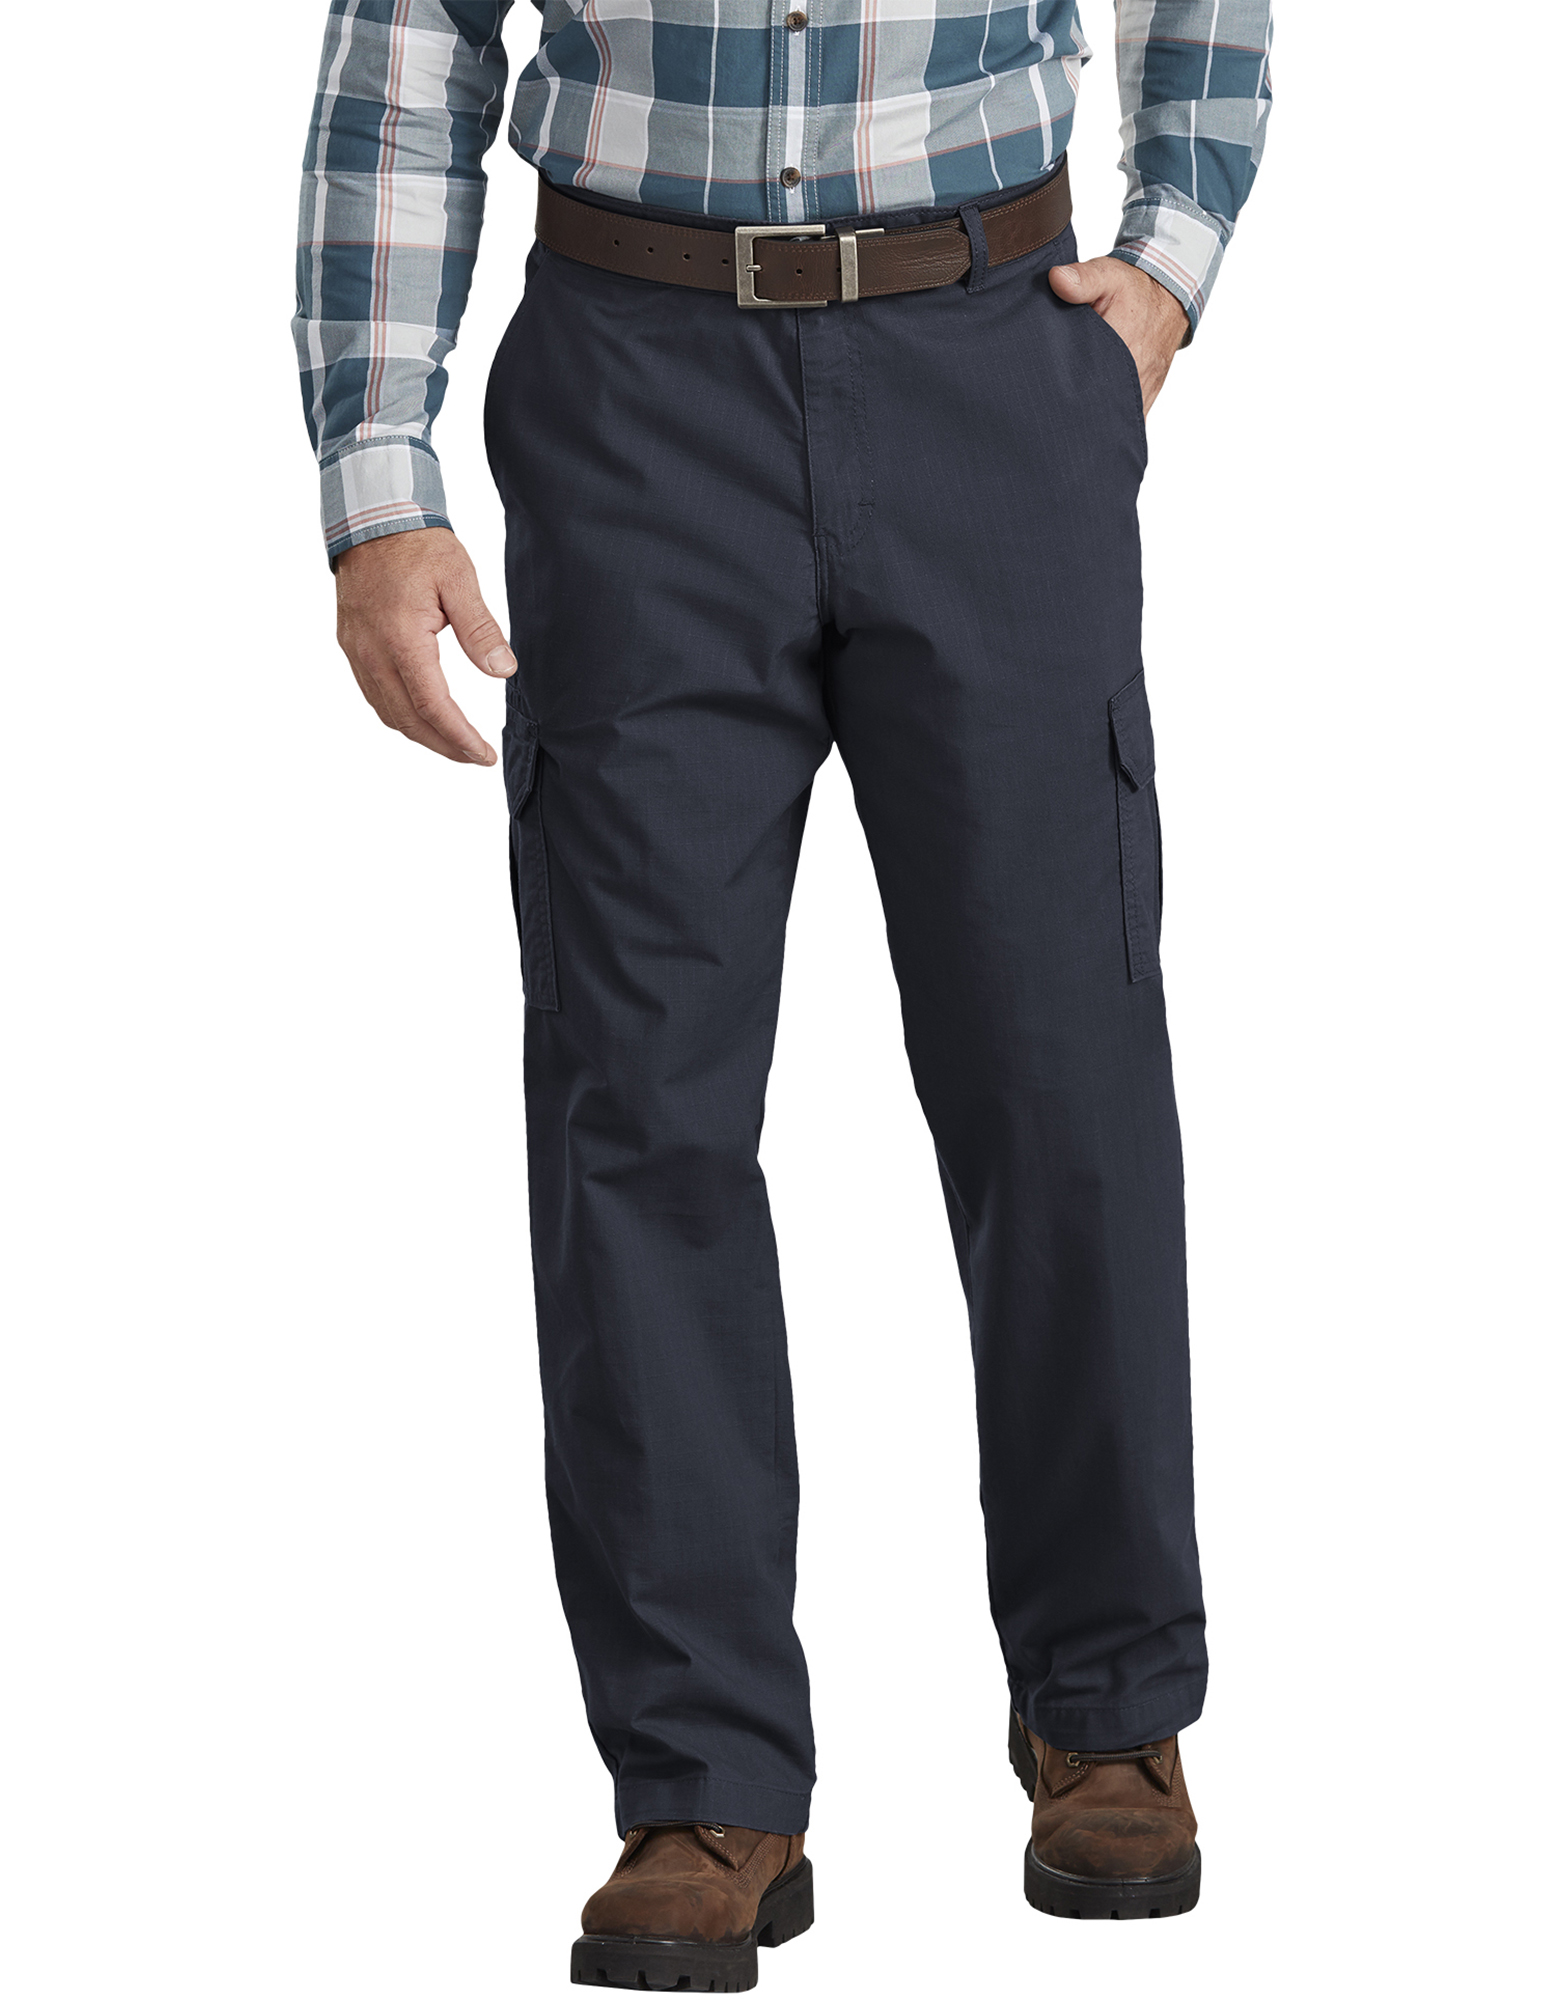 FLEX Regular Fit Ripstop Tough Max™ Cargo Pants - Dark Navy Blue (RDN)